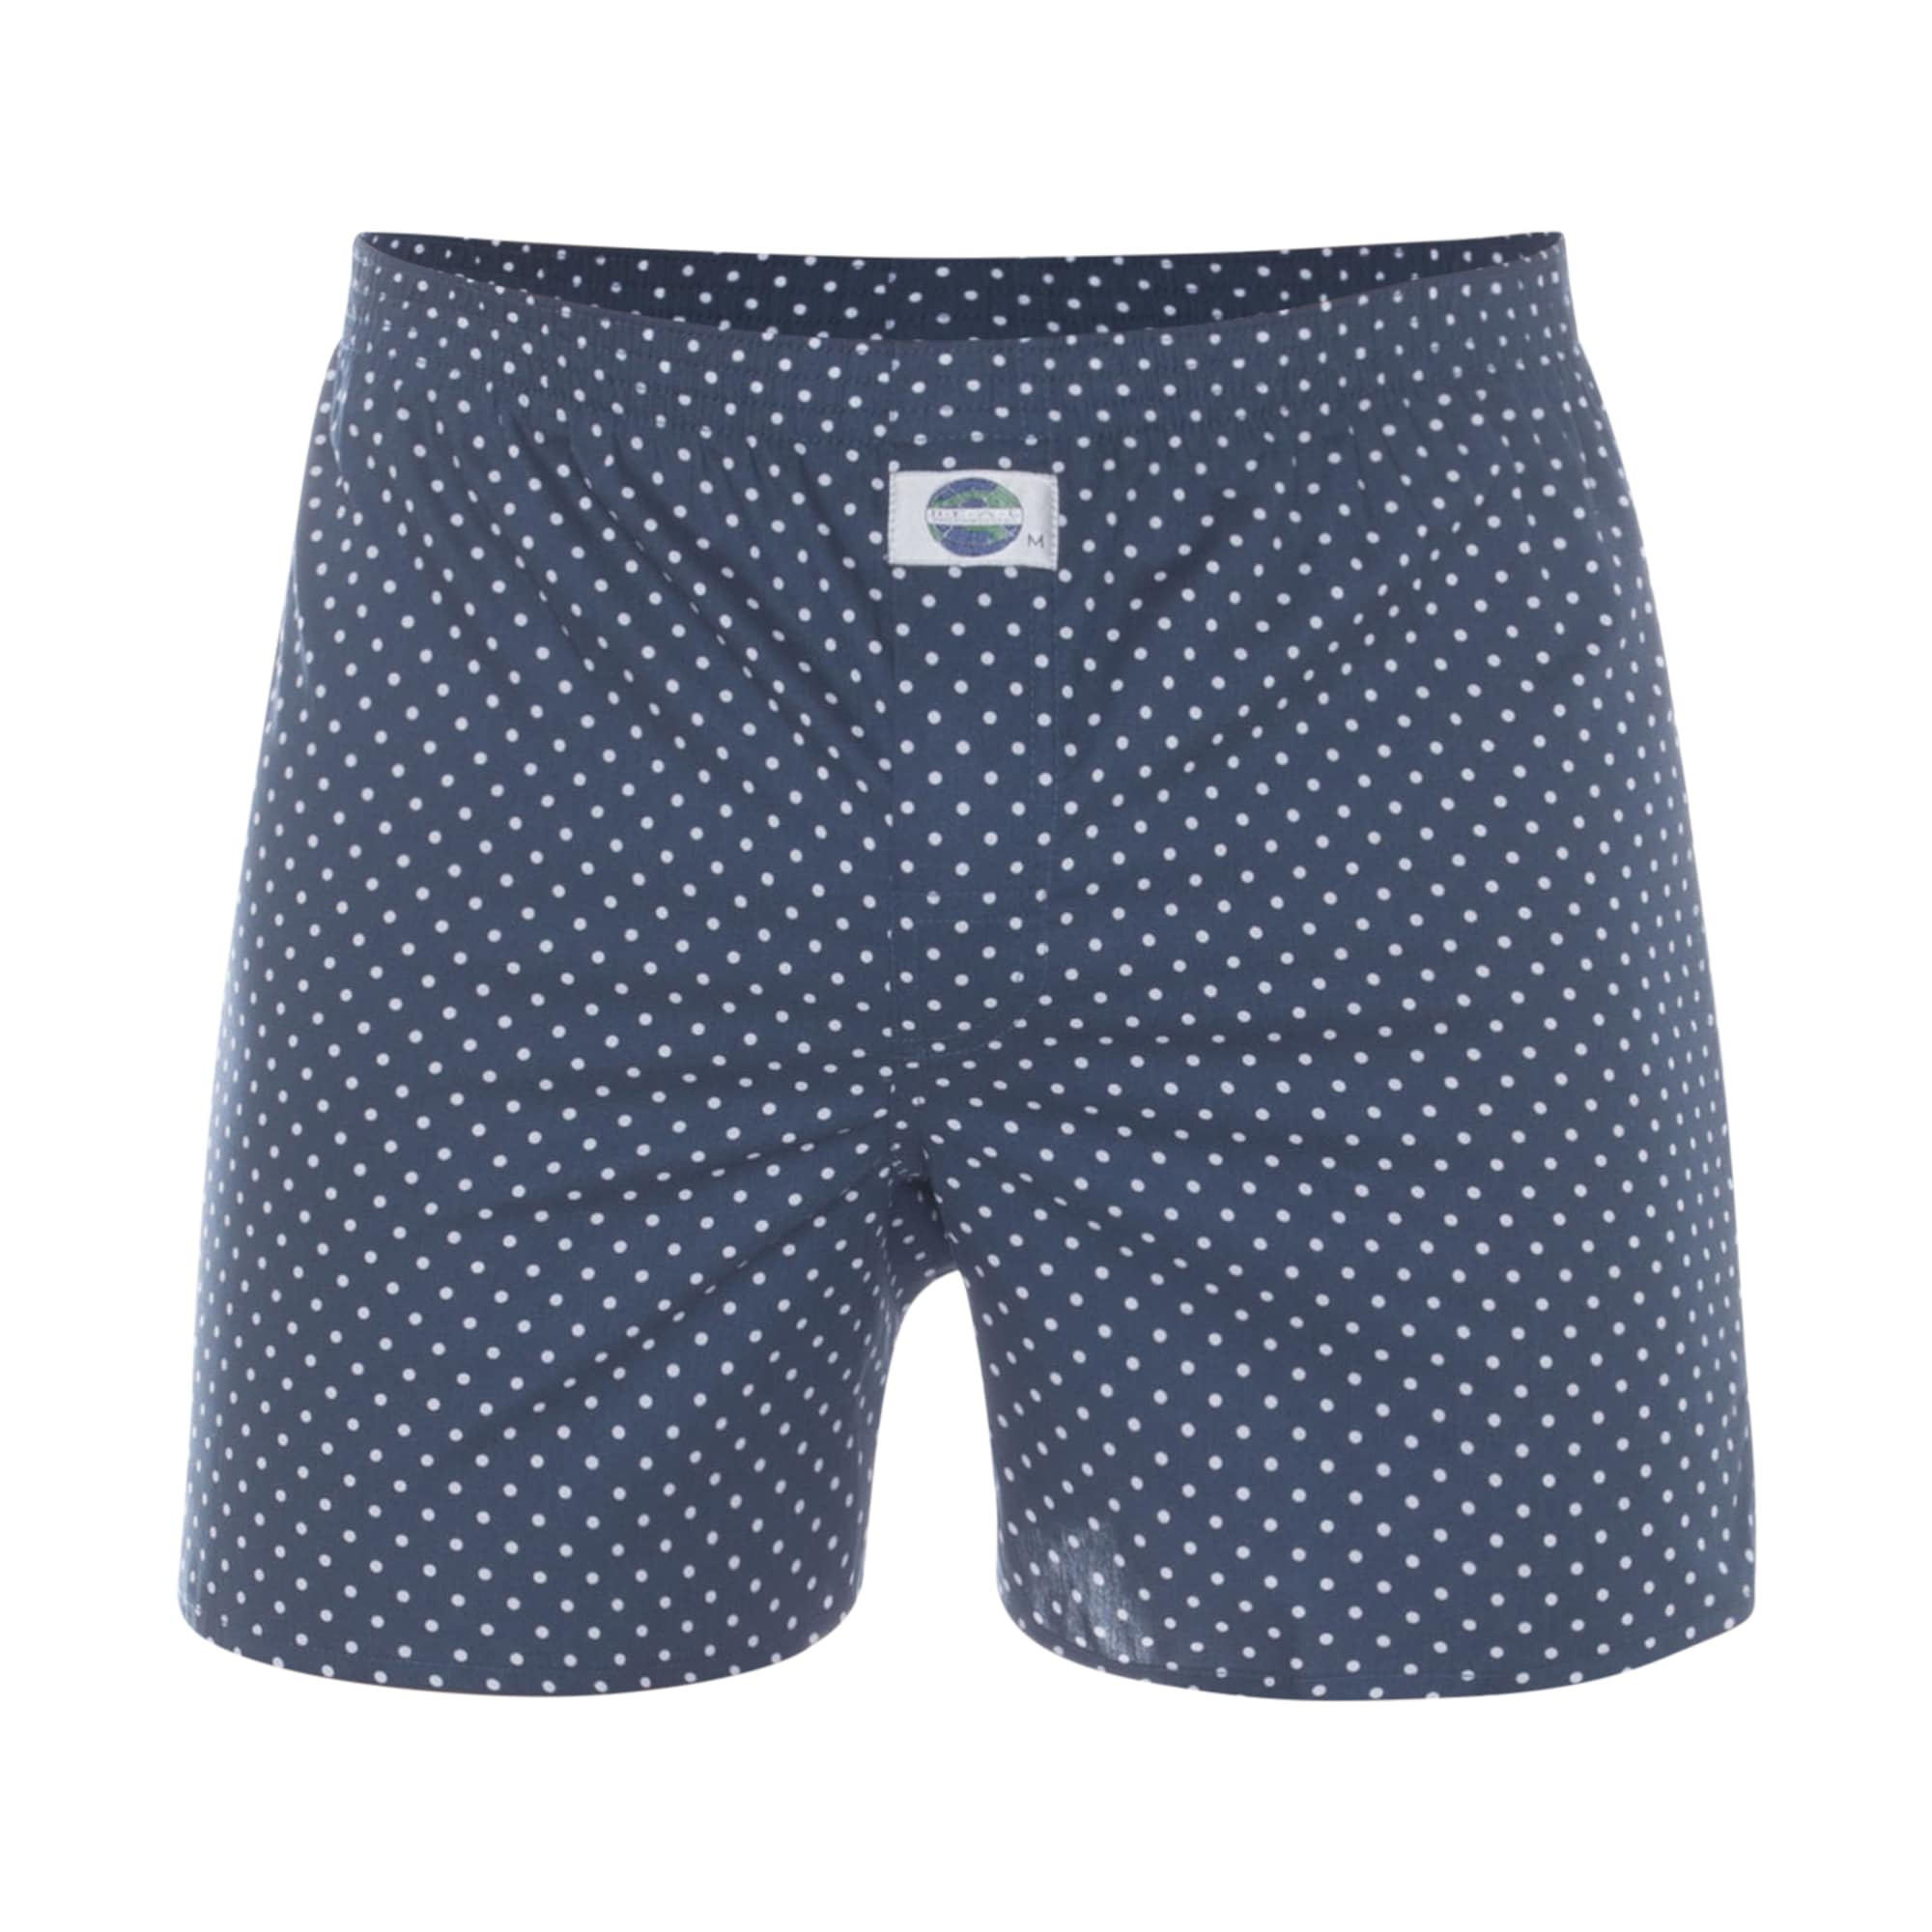 Boxerky Dots marine D.E.A.L International